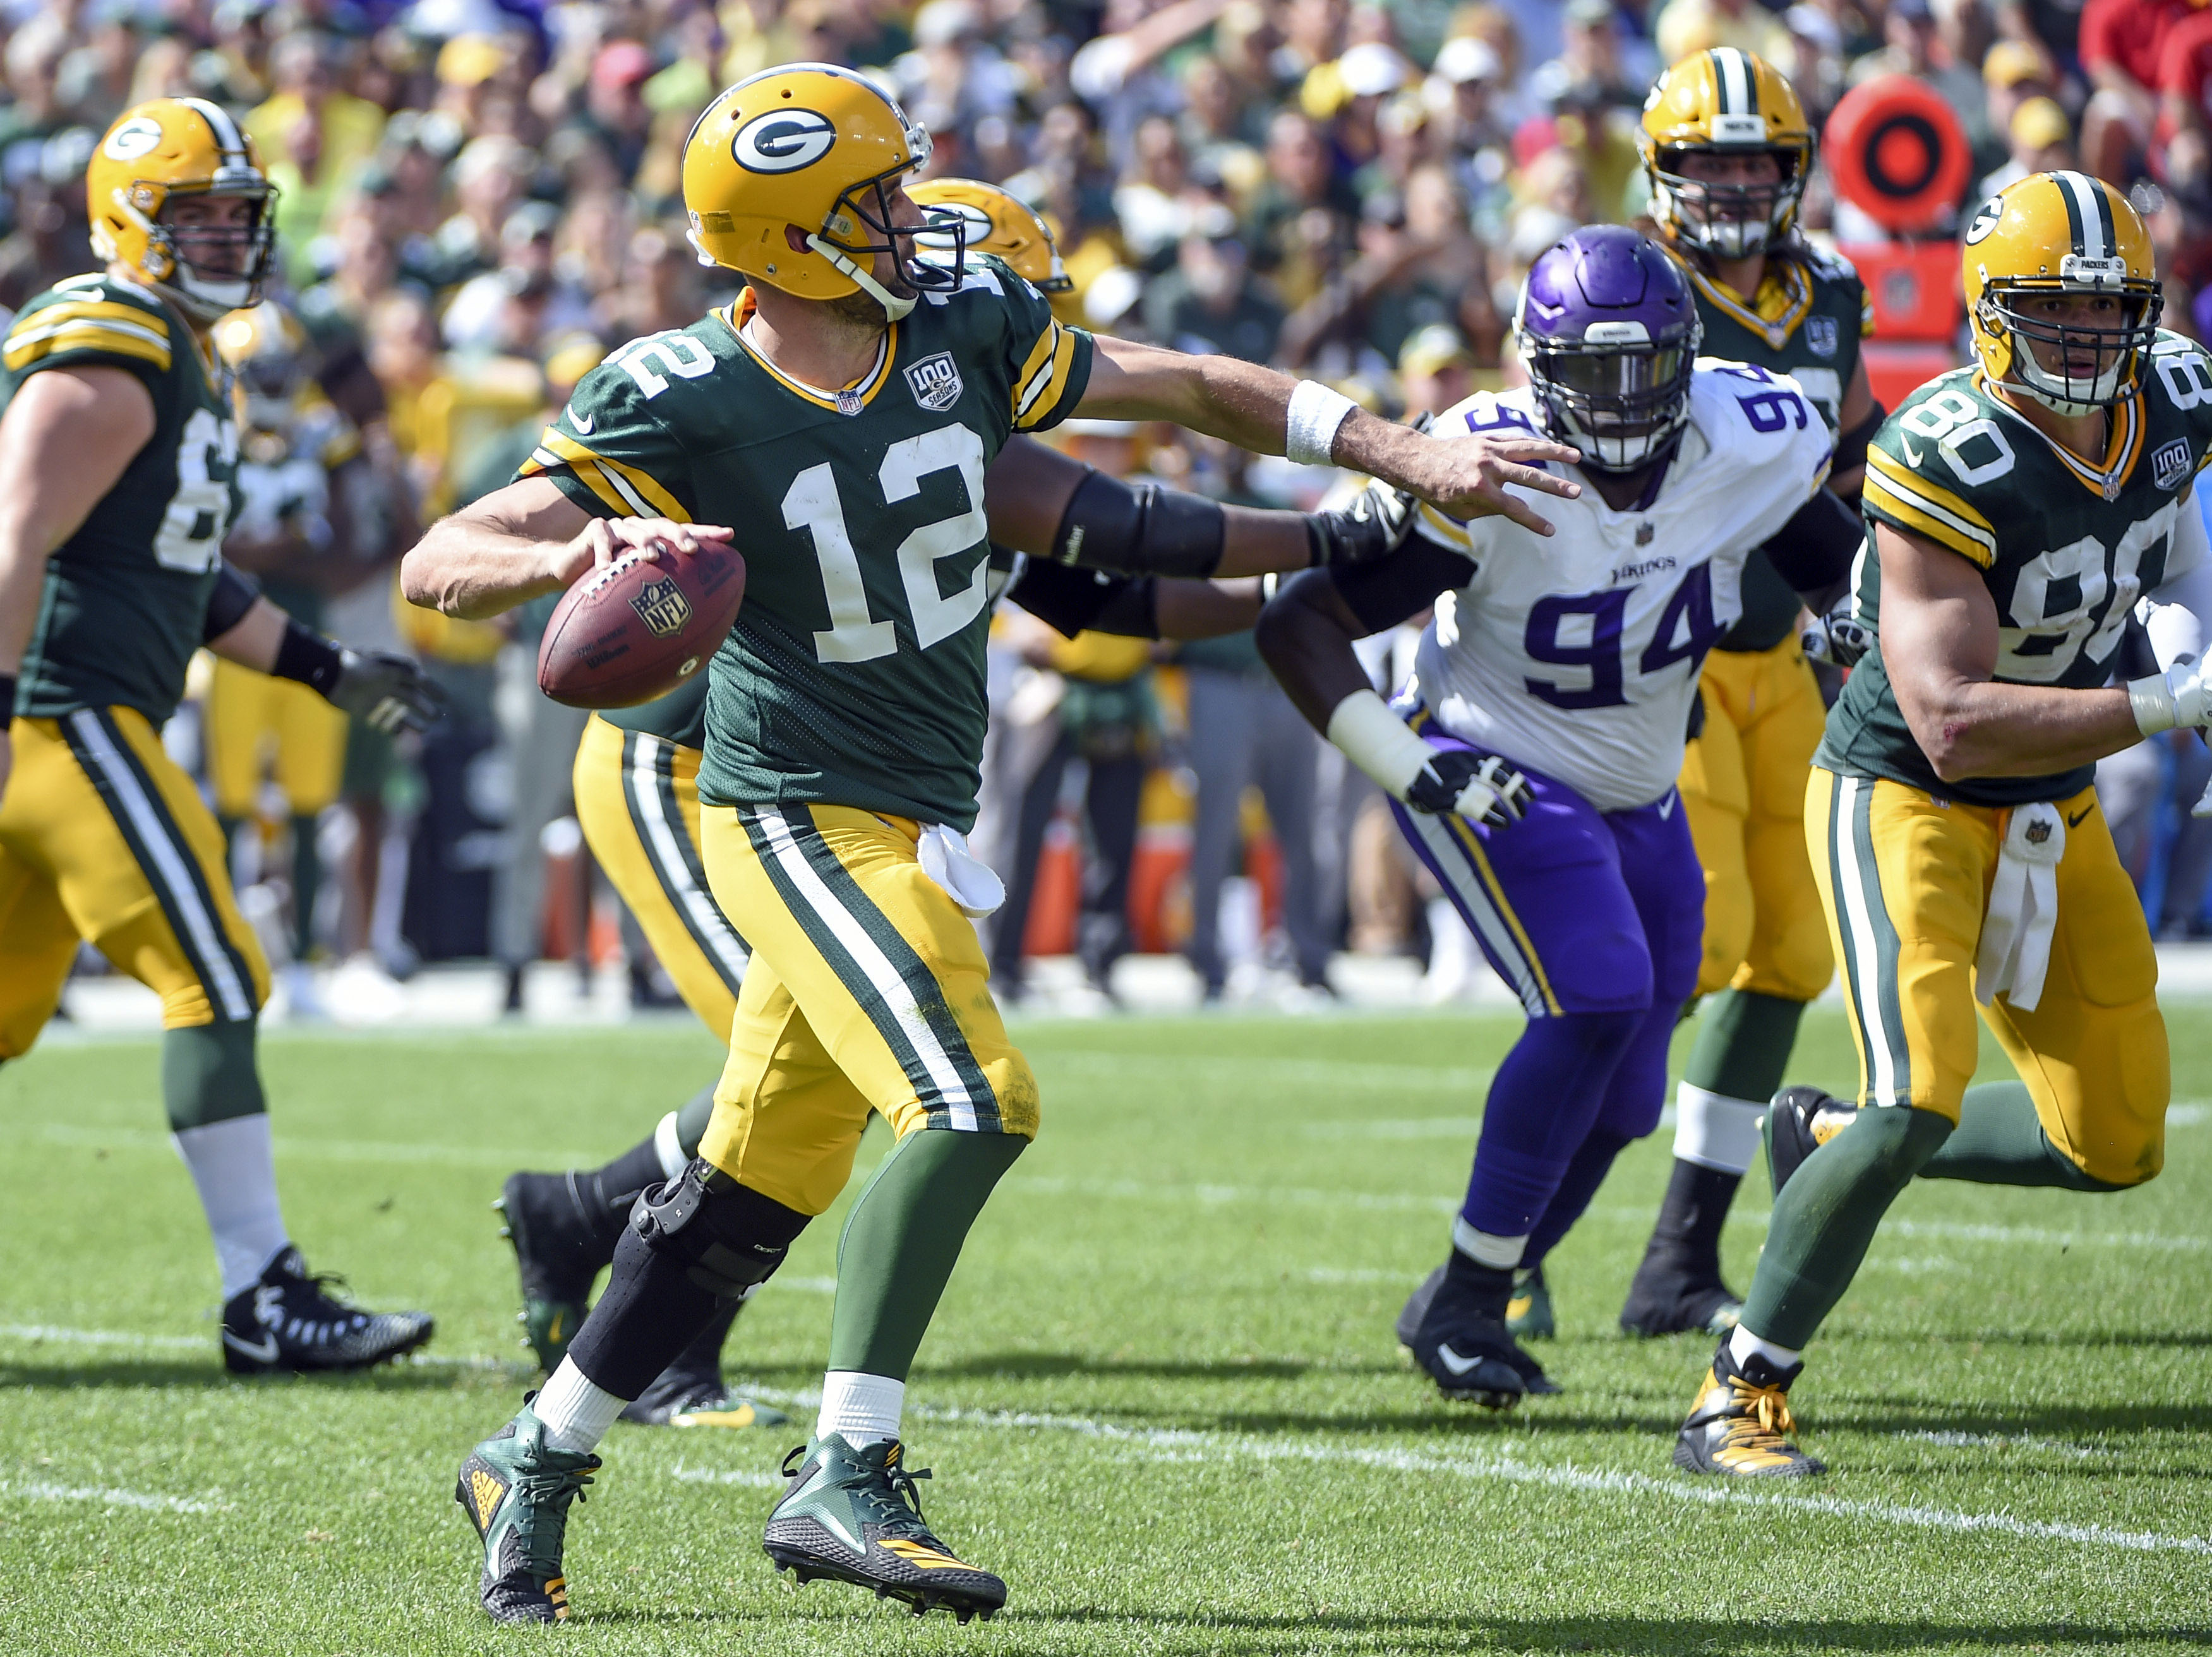 Instant Analysis: Six Key Plays That Forced the Packers to Settle for a Tie